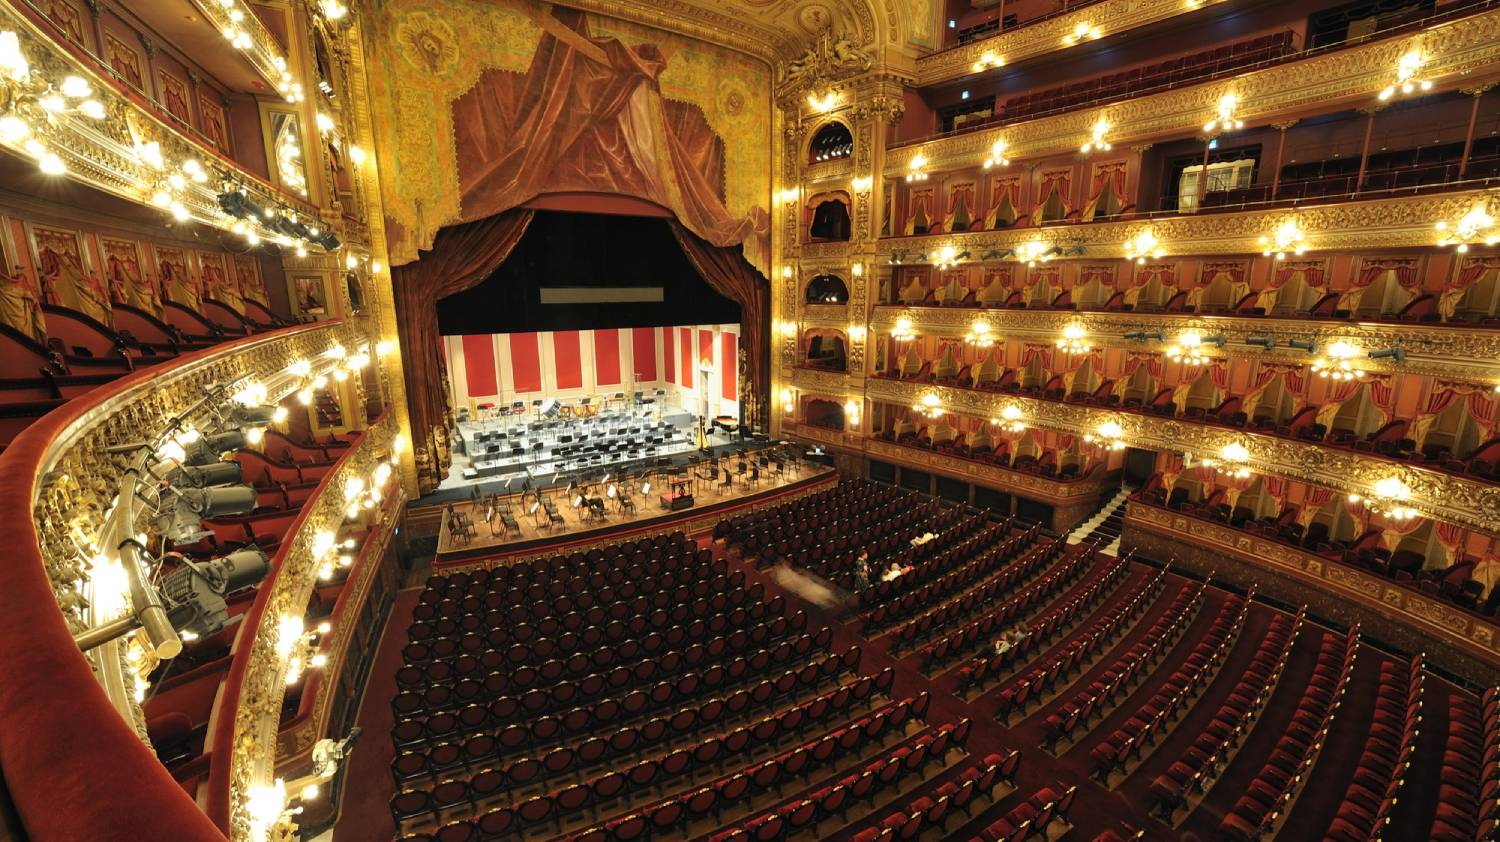 Colon Theatre (Teatro Colon) - Things To Do In Buenos Aires